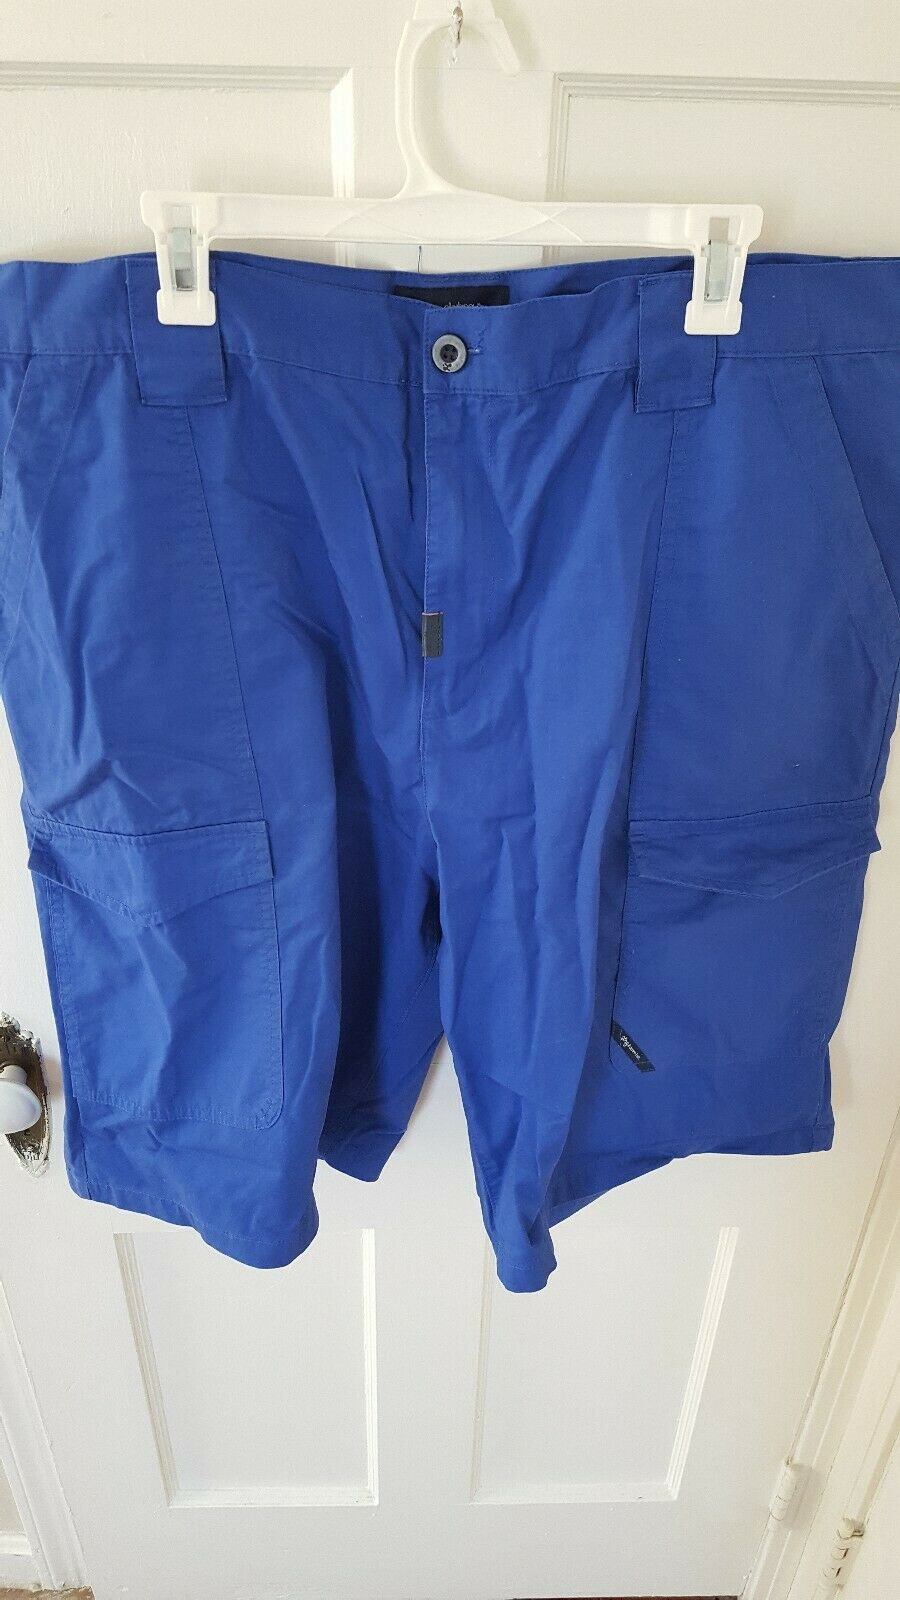 LRG Lifted Research Group Men Cargo Shorts - bluee Royal bluee Classic Fit sz 42